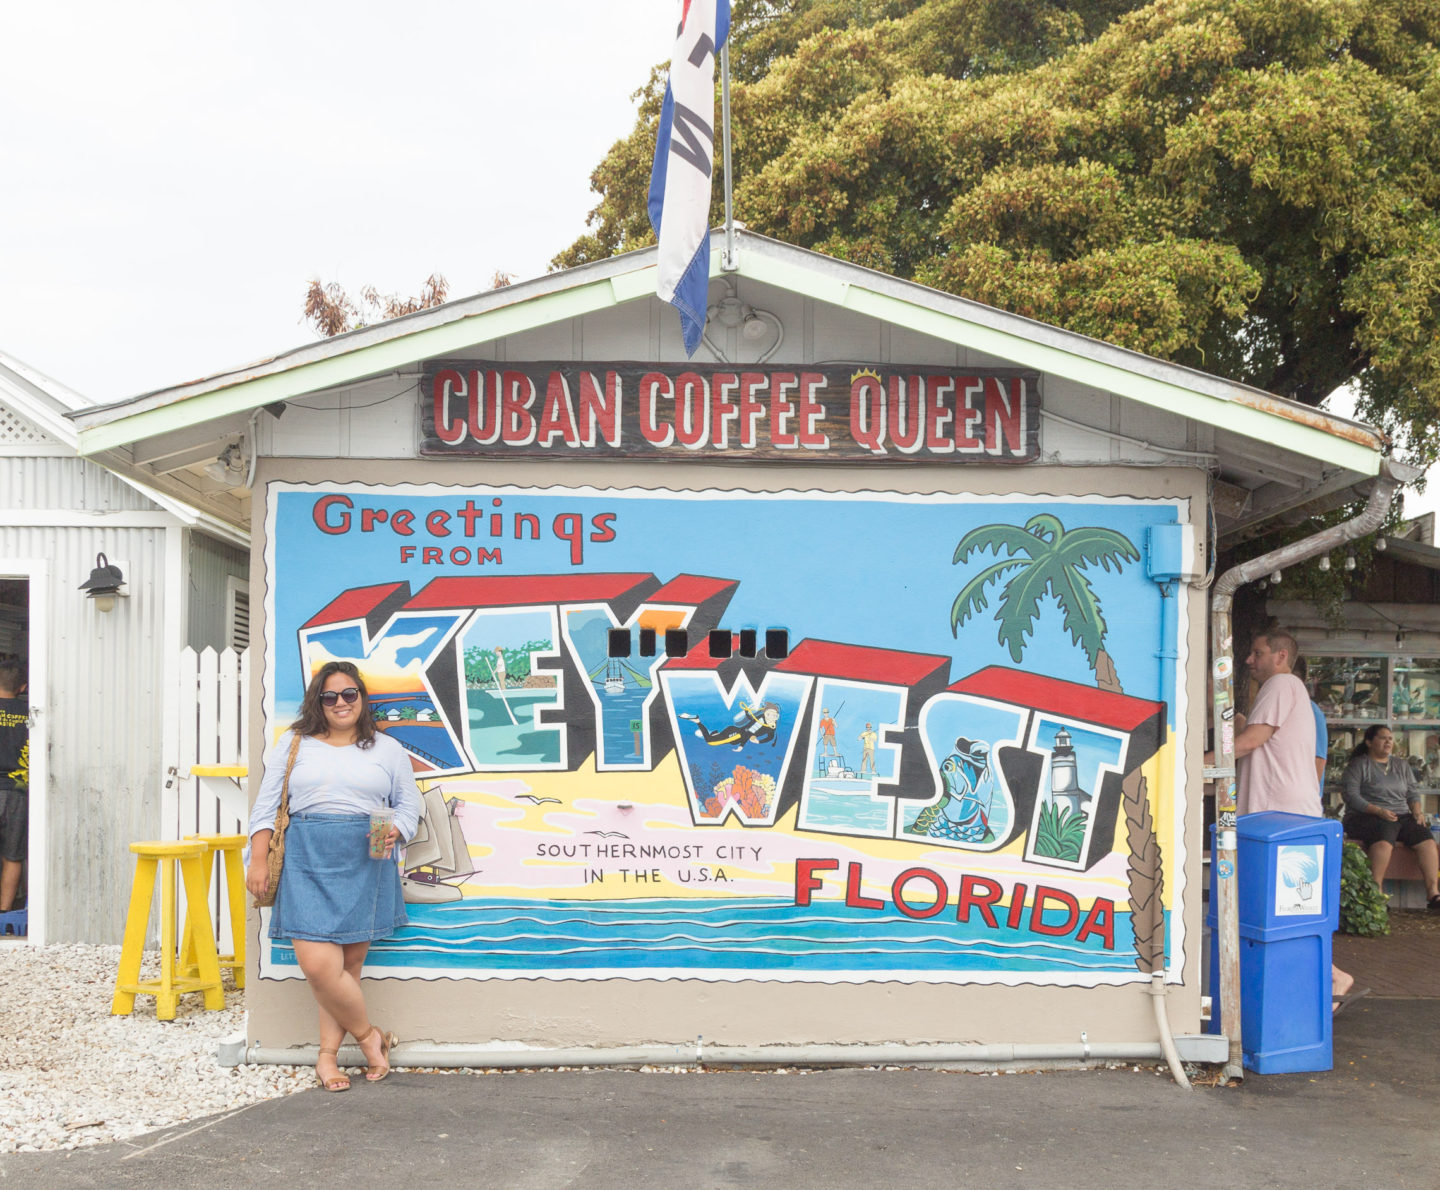 Me standing in front of a Greetings from Key West Florida sign at Cuban Coffee Queen